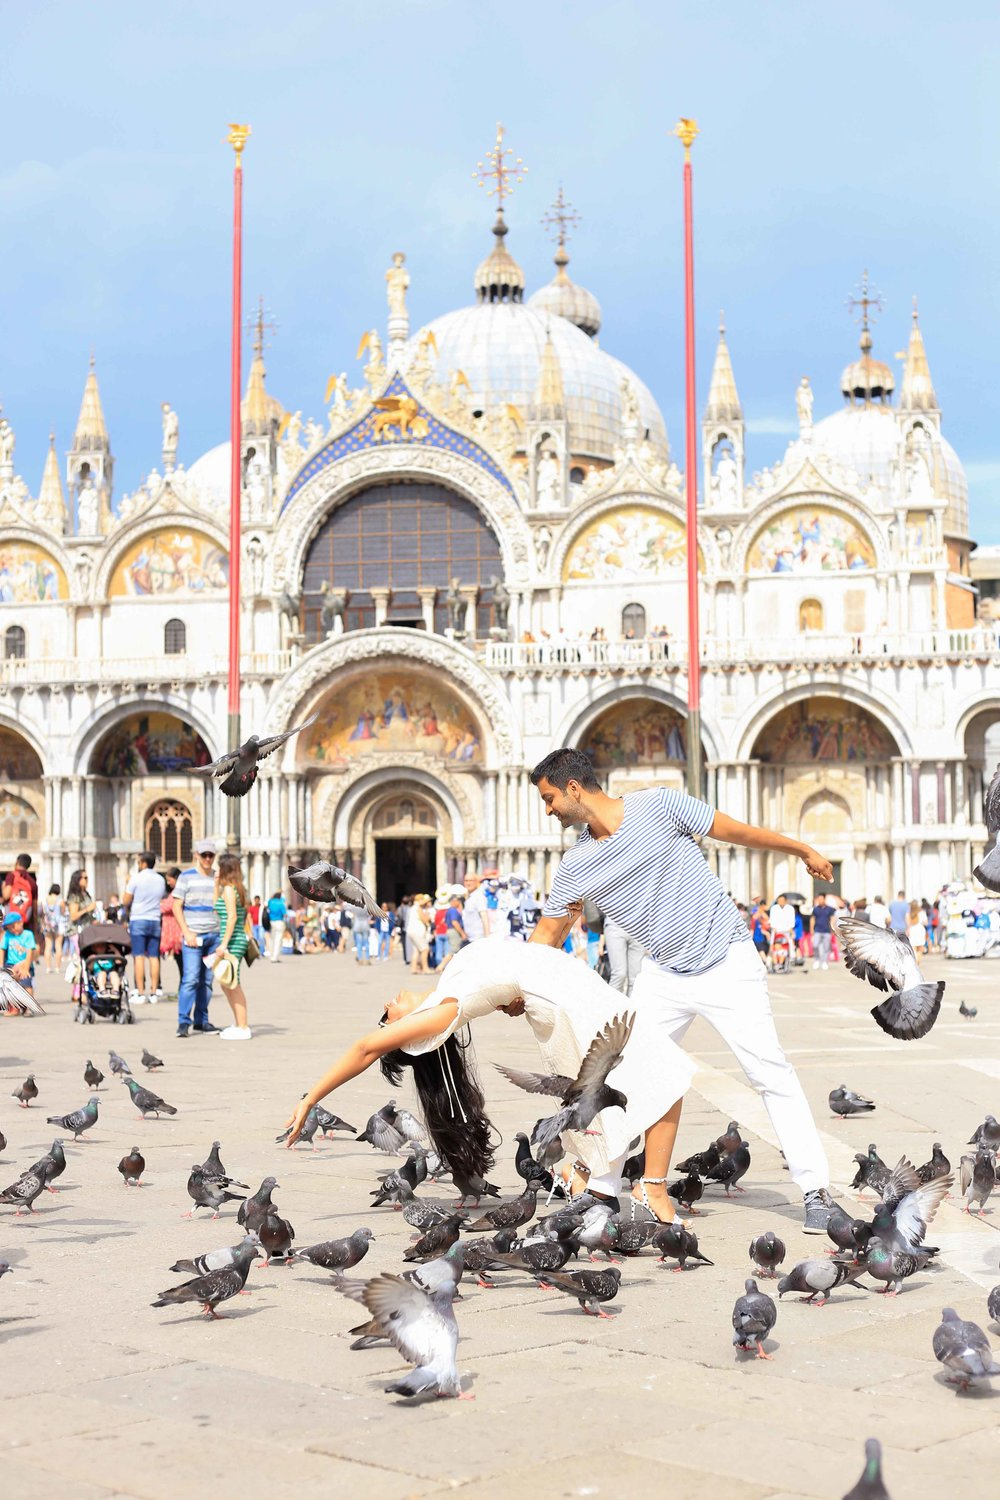 A quick dip with the pigeons outside St. Marks Basilica